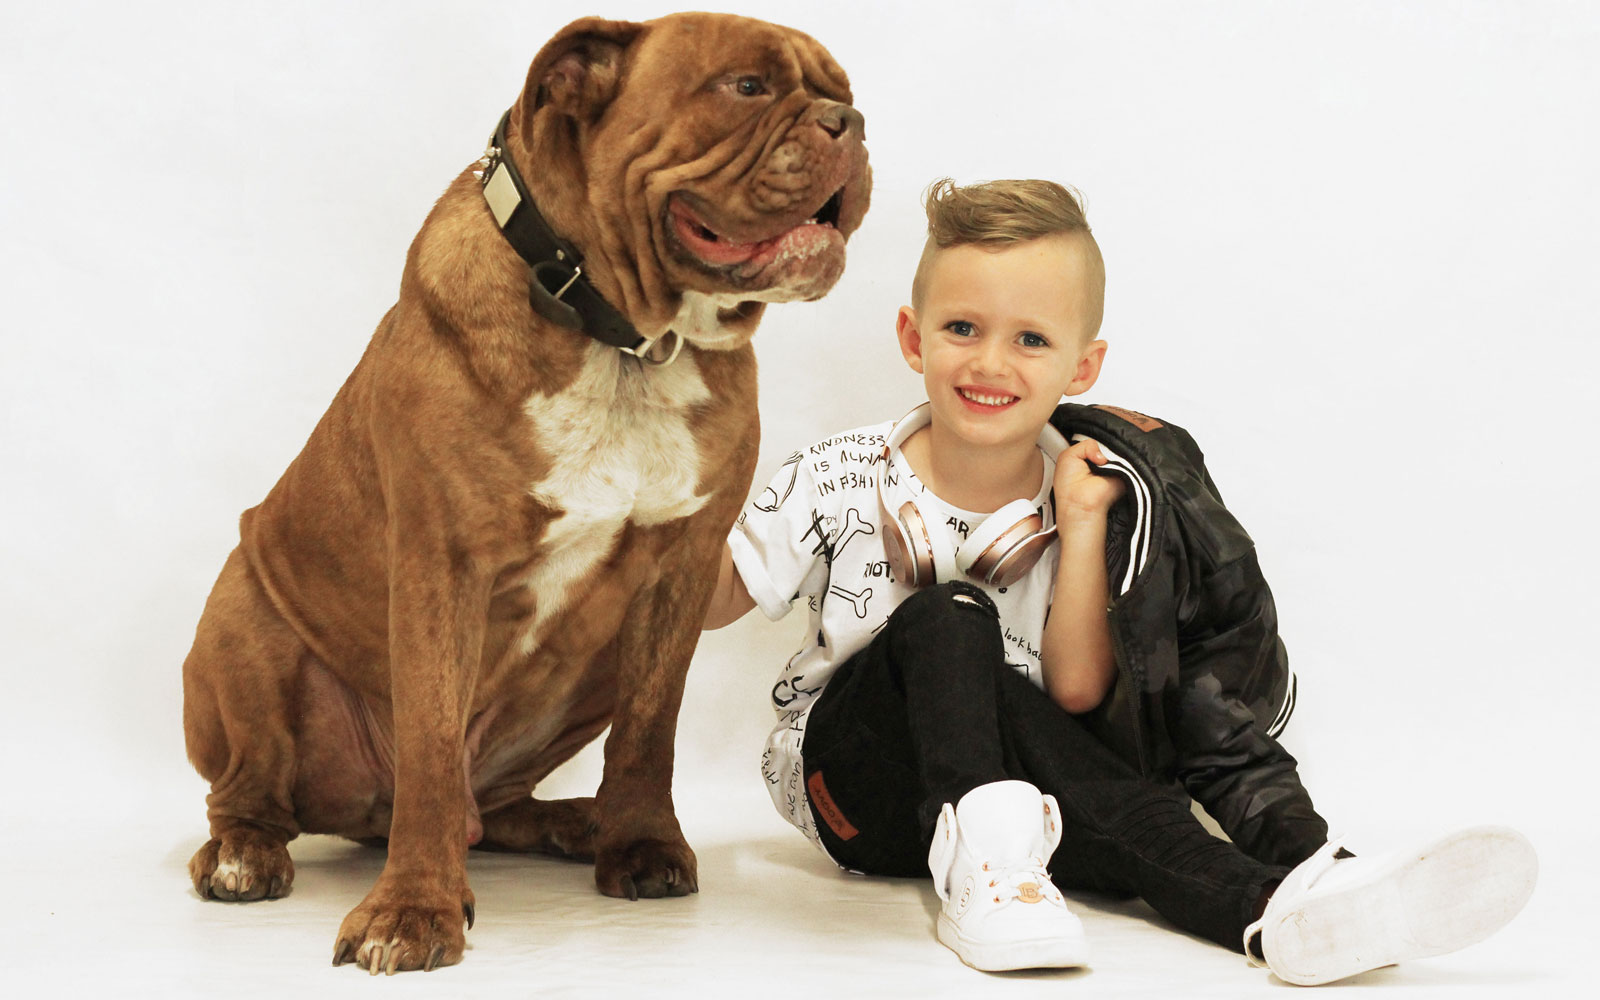 OOVY Kids Boys and his dog biggie smalls